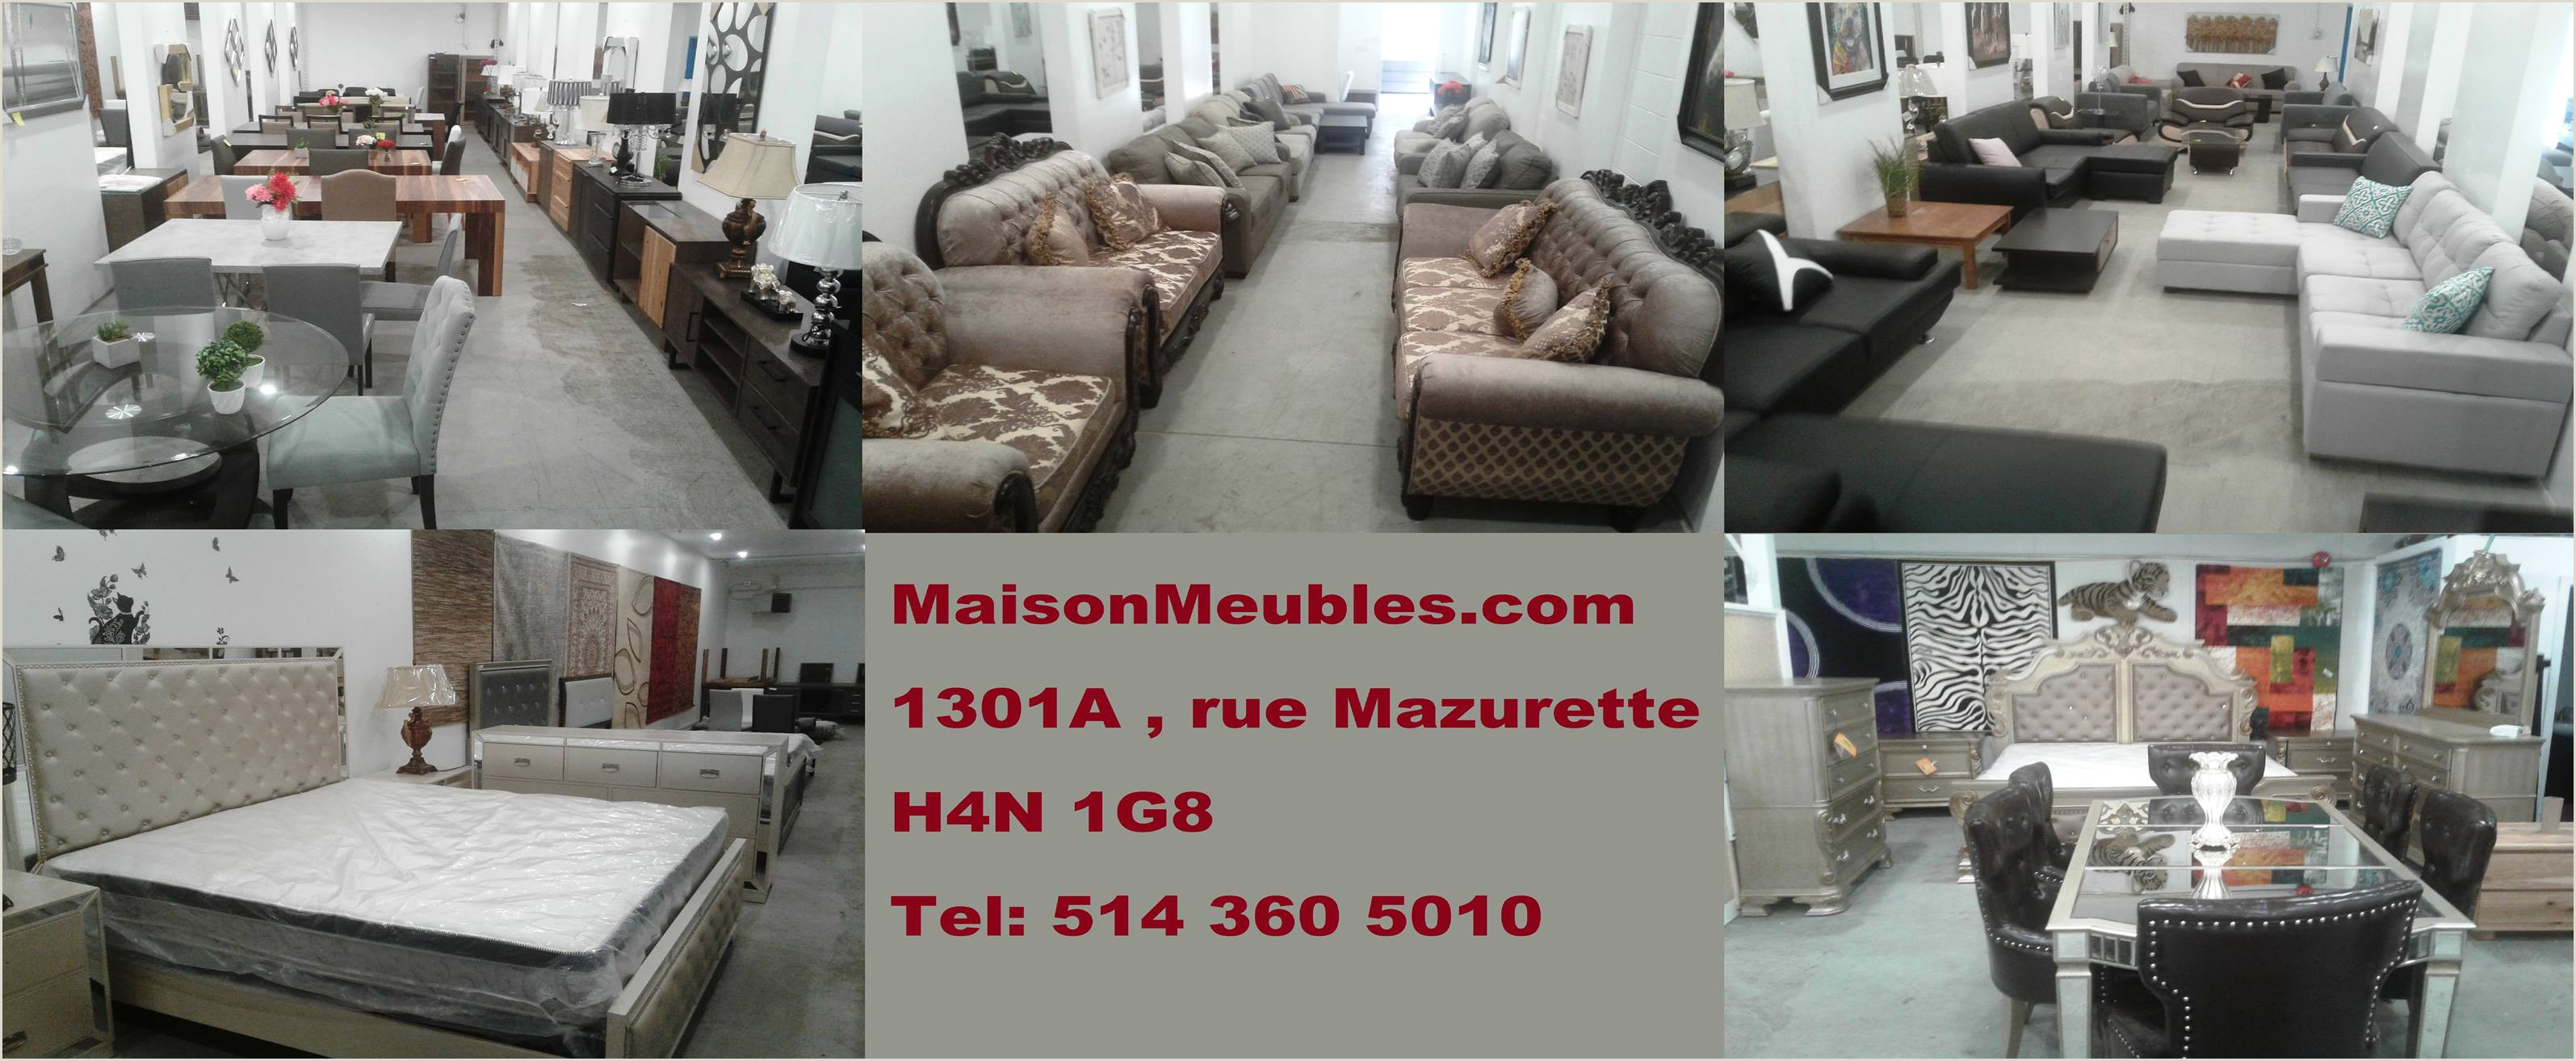 Maison Des Meubles in Montreal Furniture Stores Home